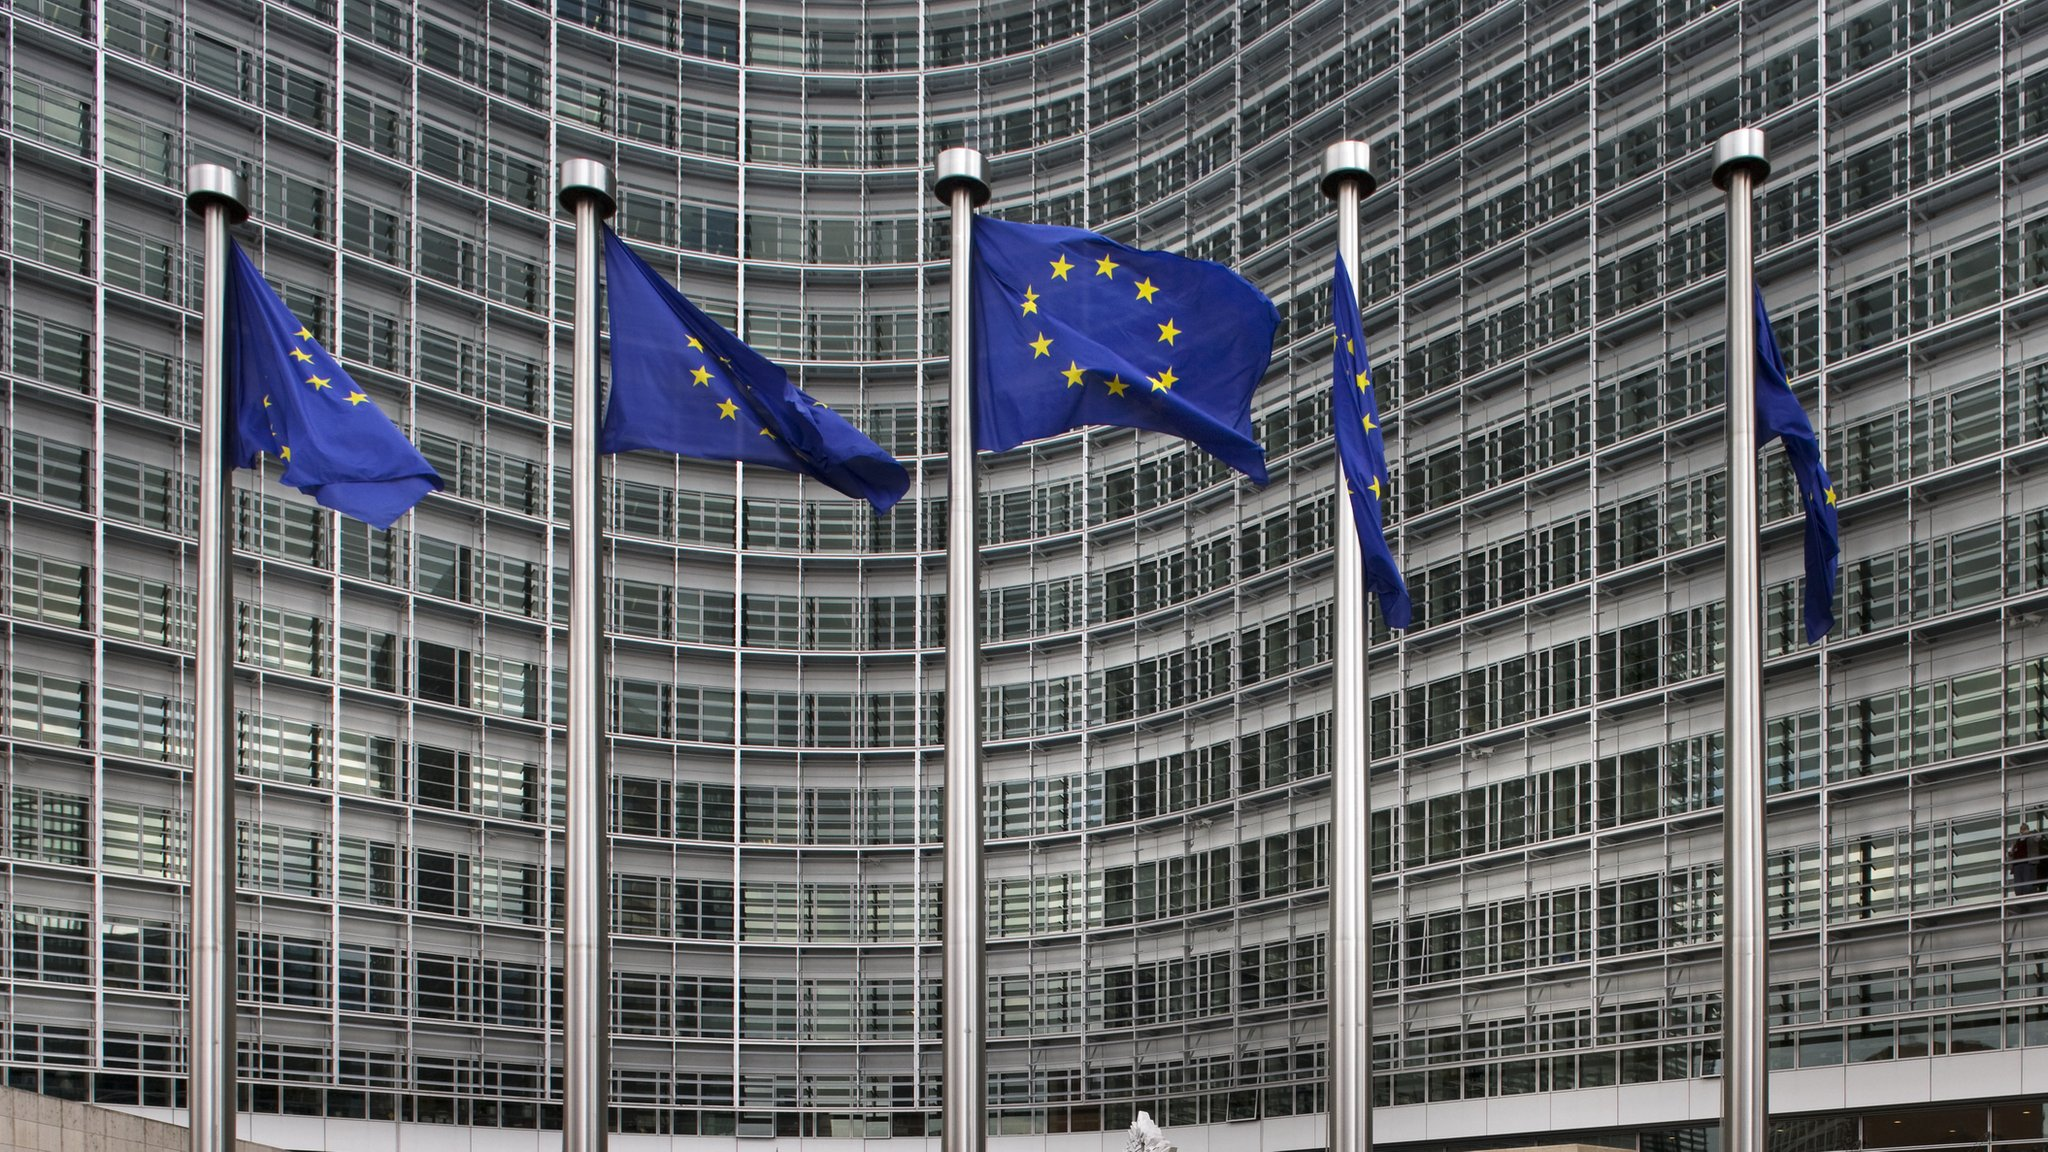 European Union diplomatic communications 'targeted by hackers'